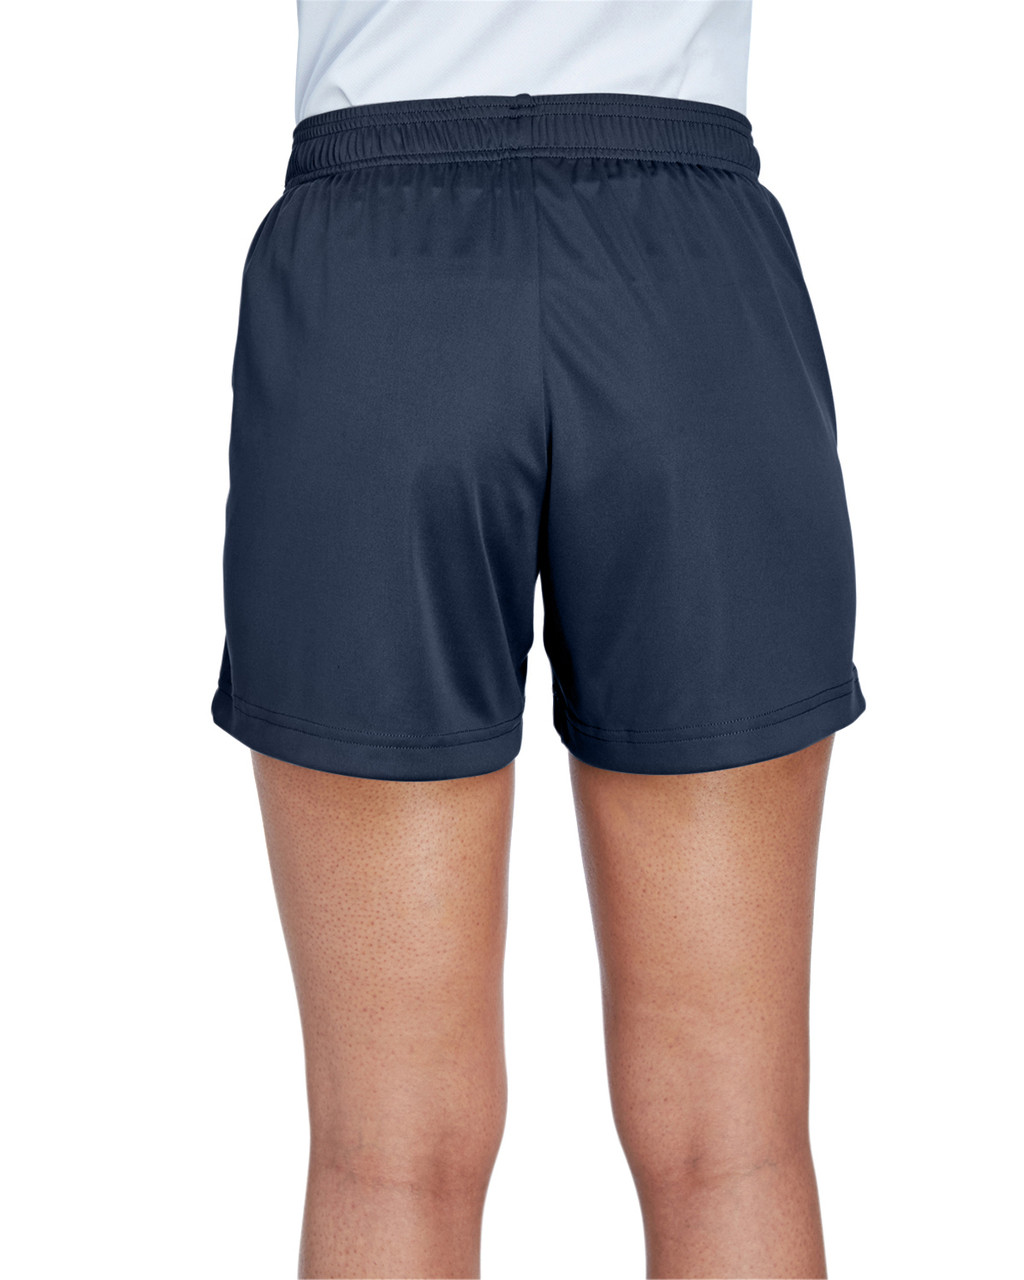 Sport Dark Navy - Back, TT11SHW Team 365 Ladies' Zone Performance Short | T-shirt.ca